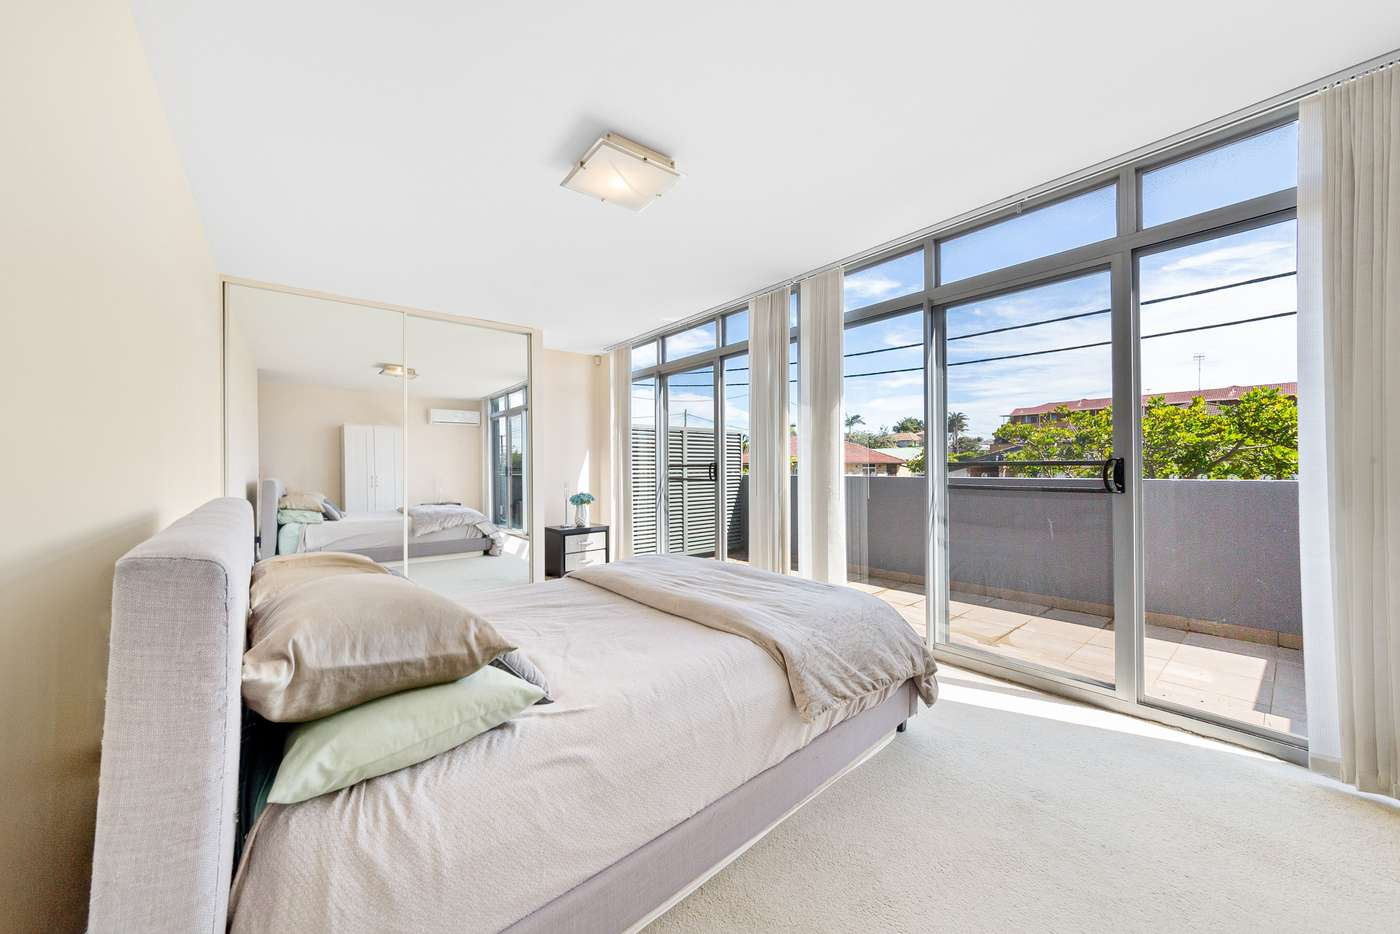 Sixth view of Homely house listing, 5/2-6 Warrigal Street, The Entrance NSW 2261